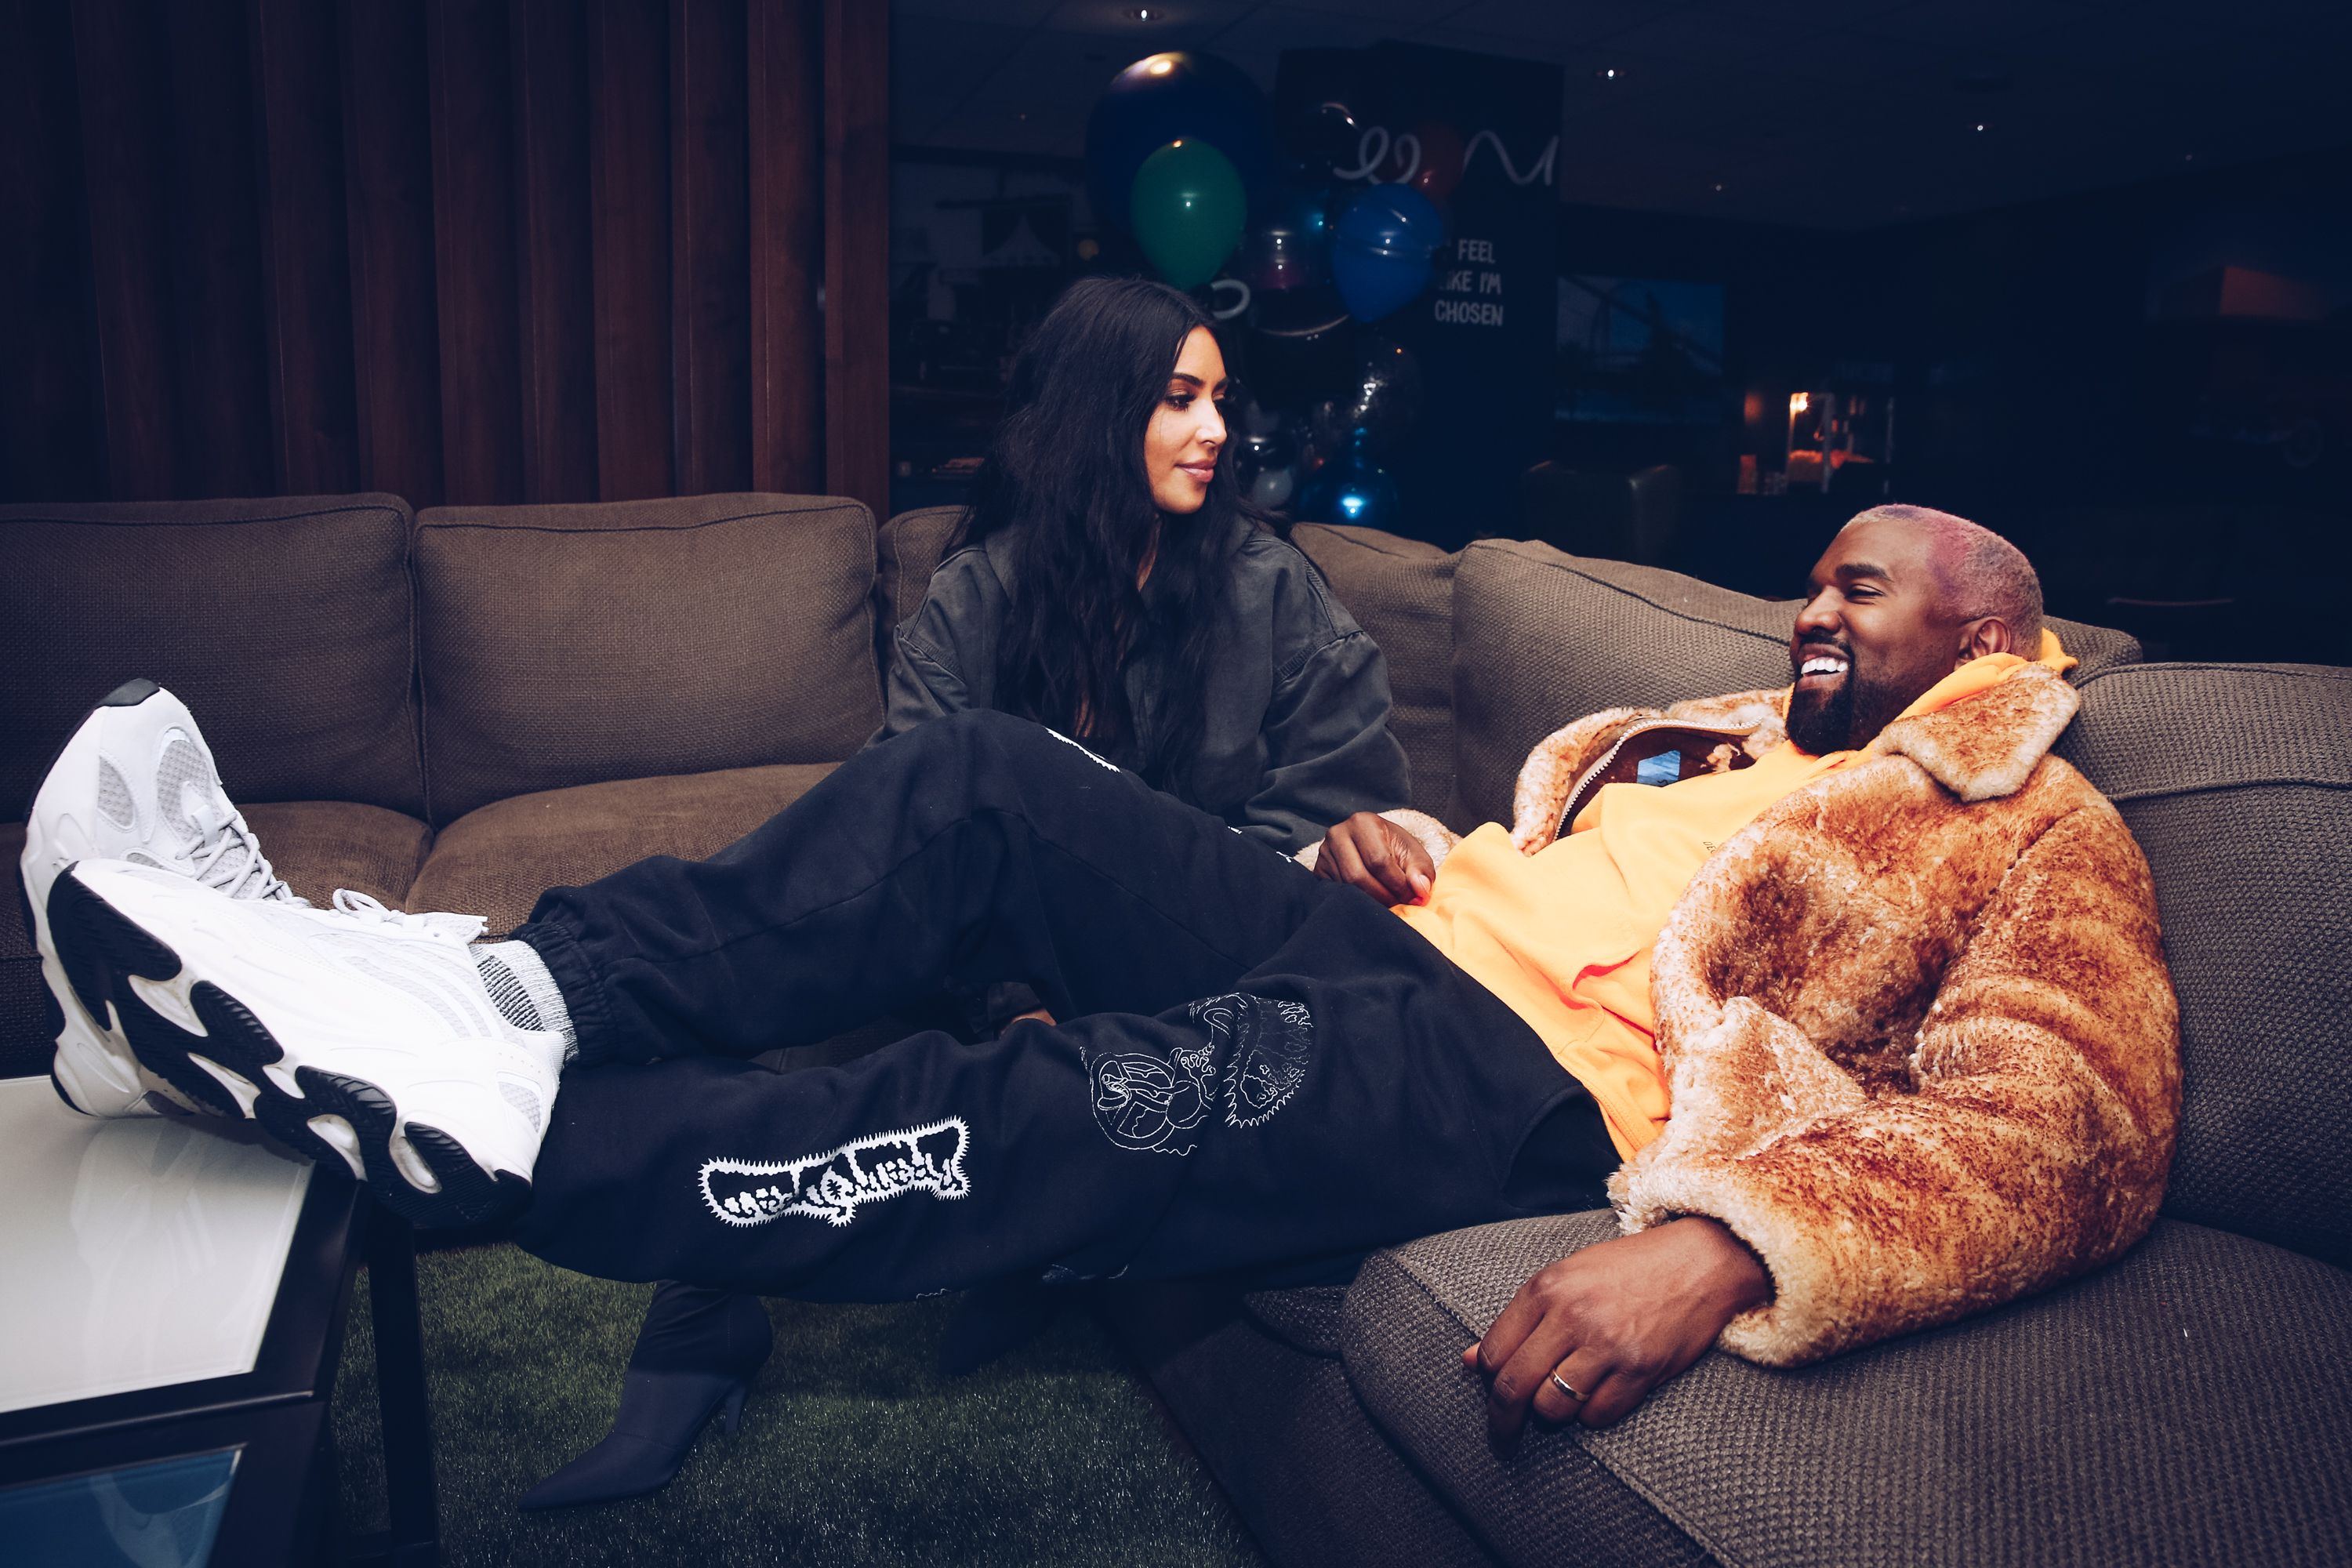 Kim Kardashian Is Being 'Sued' For An Adorable Couple Photograph With Husband Kanye West